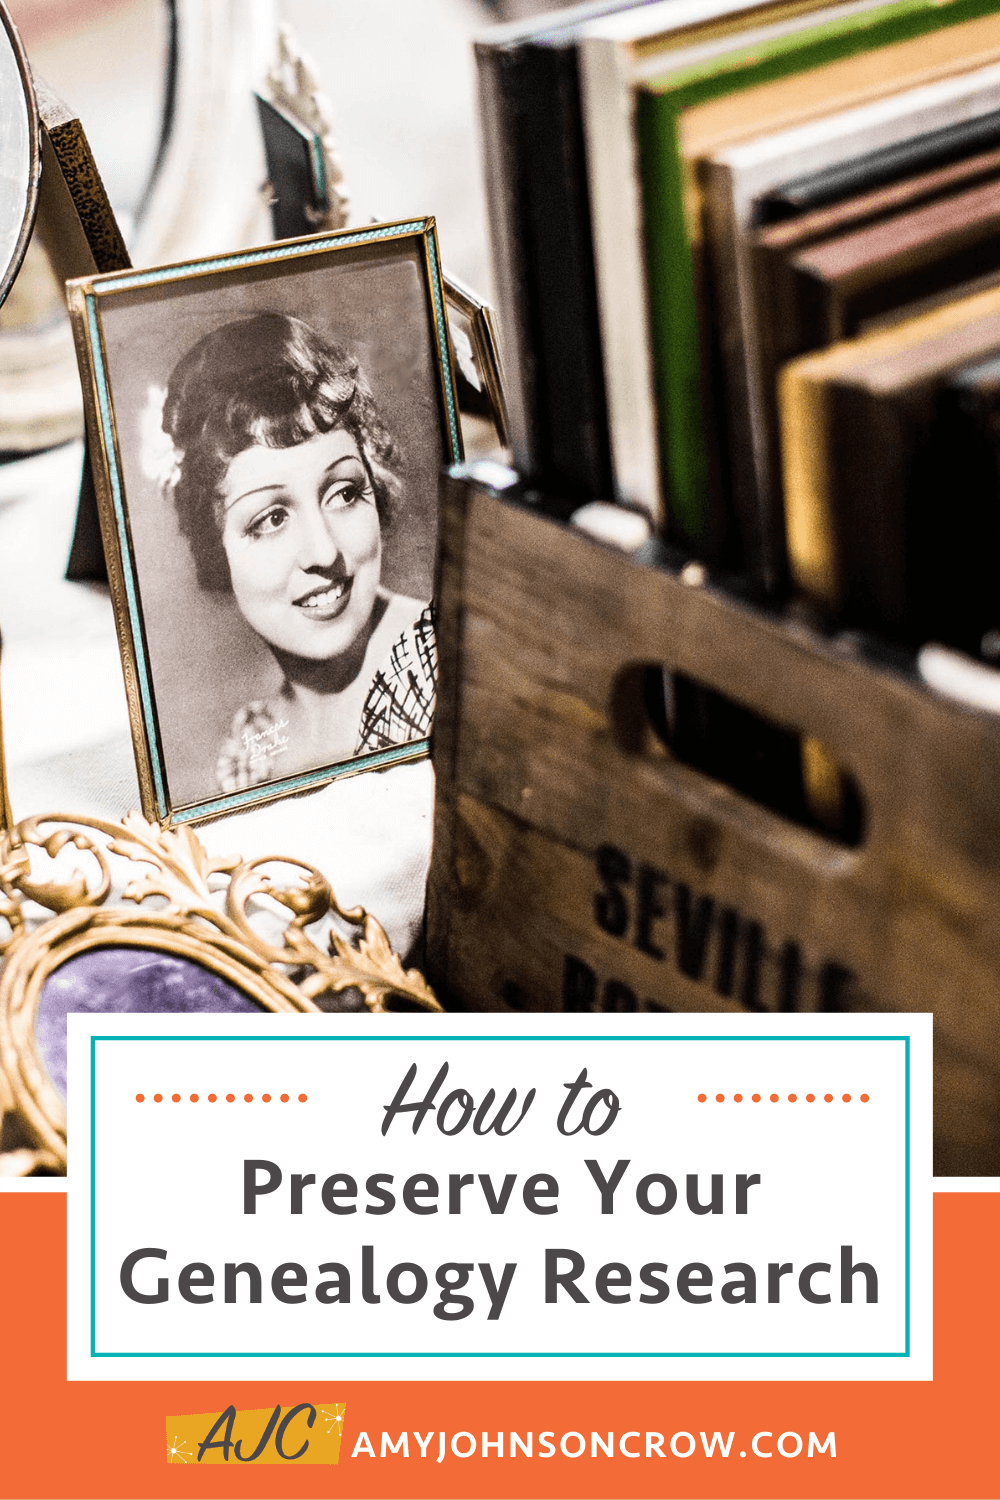 box of books and woman's photo with title How to Preserve Your Genealogy Research